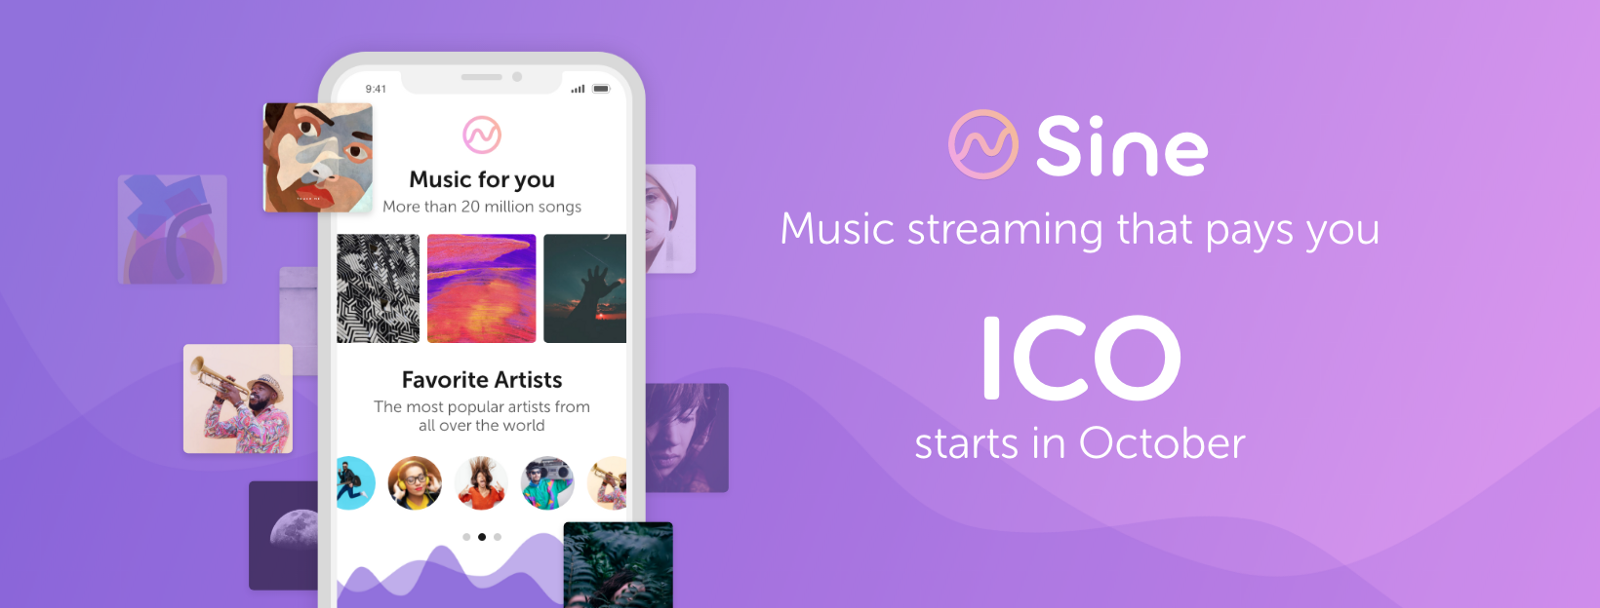 /first-music-streaming-app-sine-that-pays-listeners-for-music-discoveries-to-raise-60%D0%BC-through-95a76a35f2a8 feature image